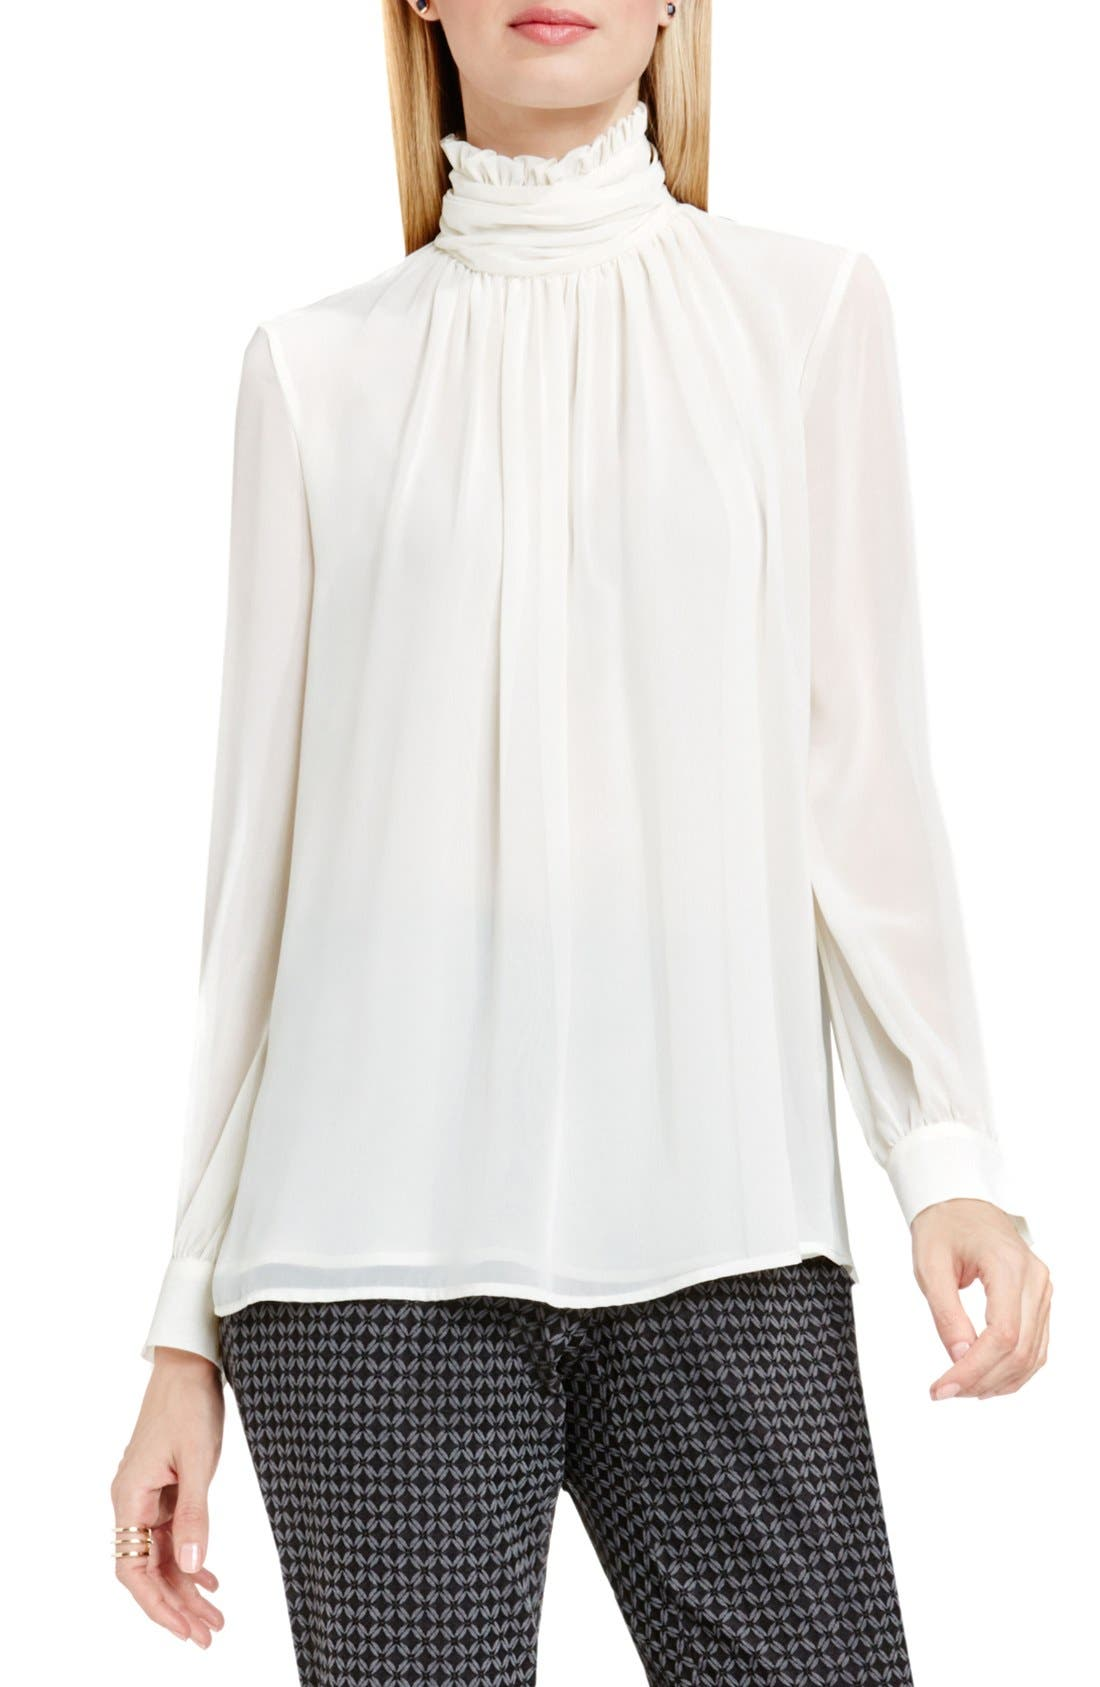 Alternate Image 1 Selected - Vince Camuto Ruffle Collar Blouse (Regular & Petite)